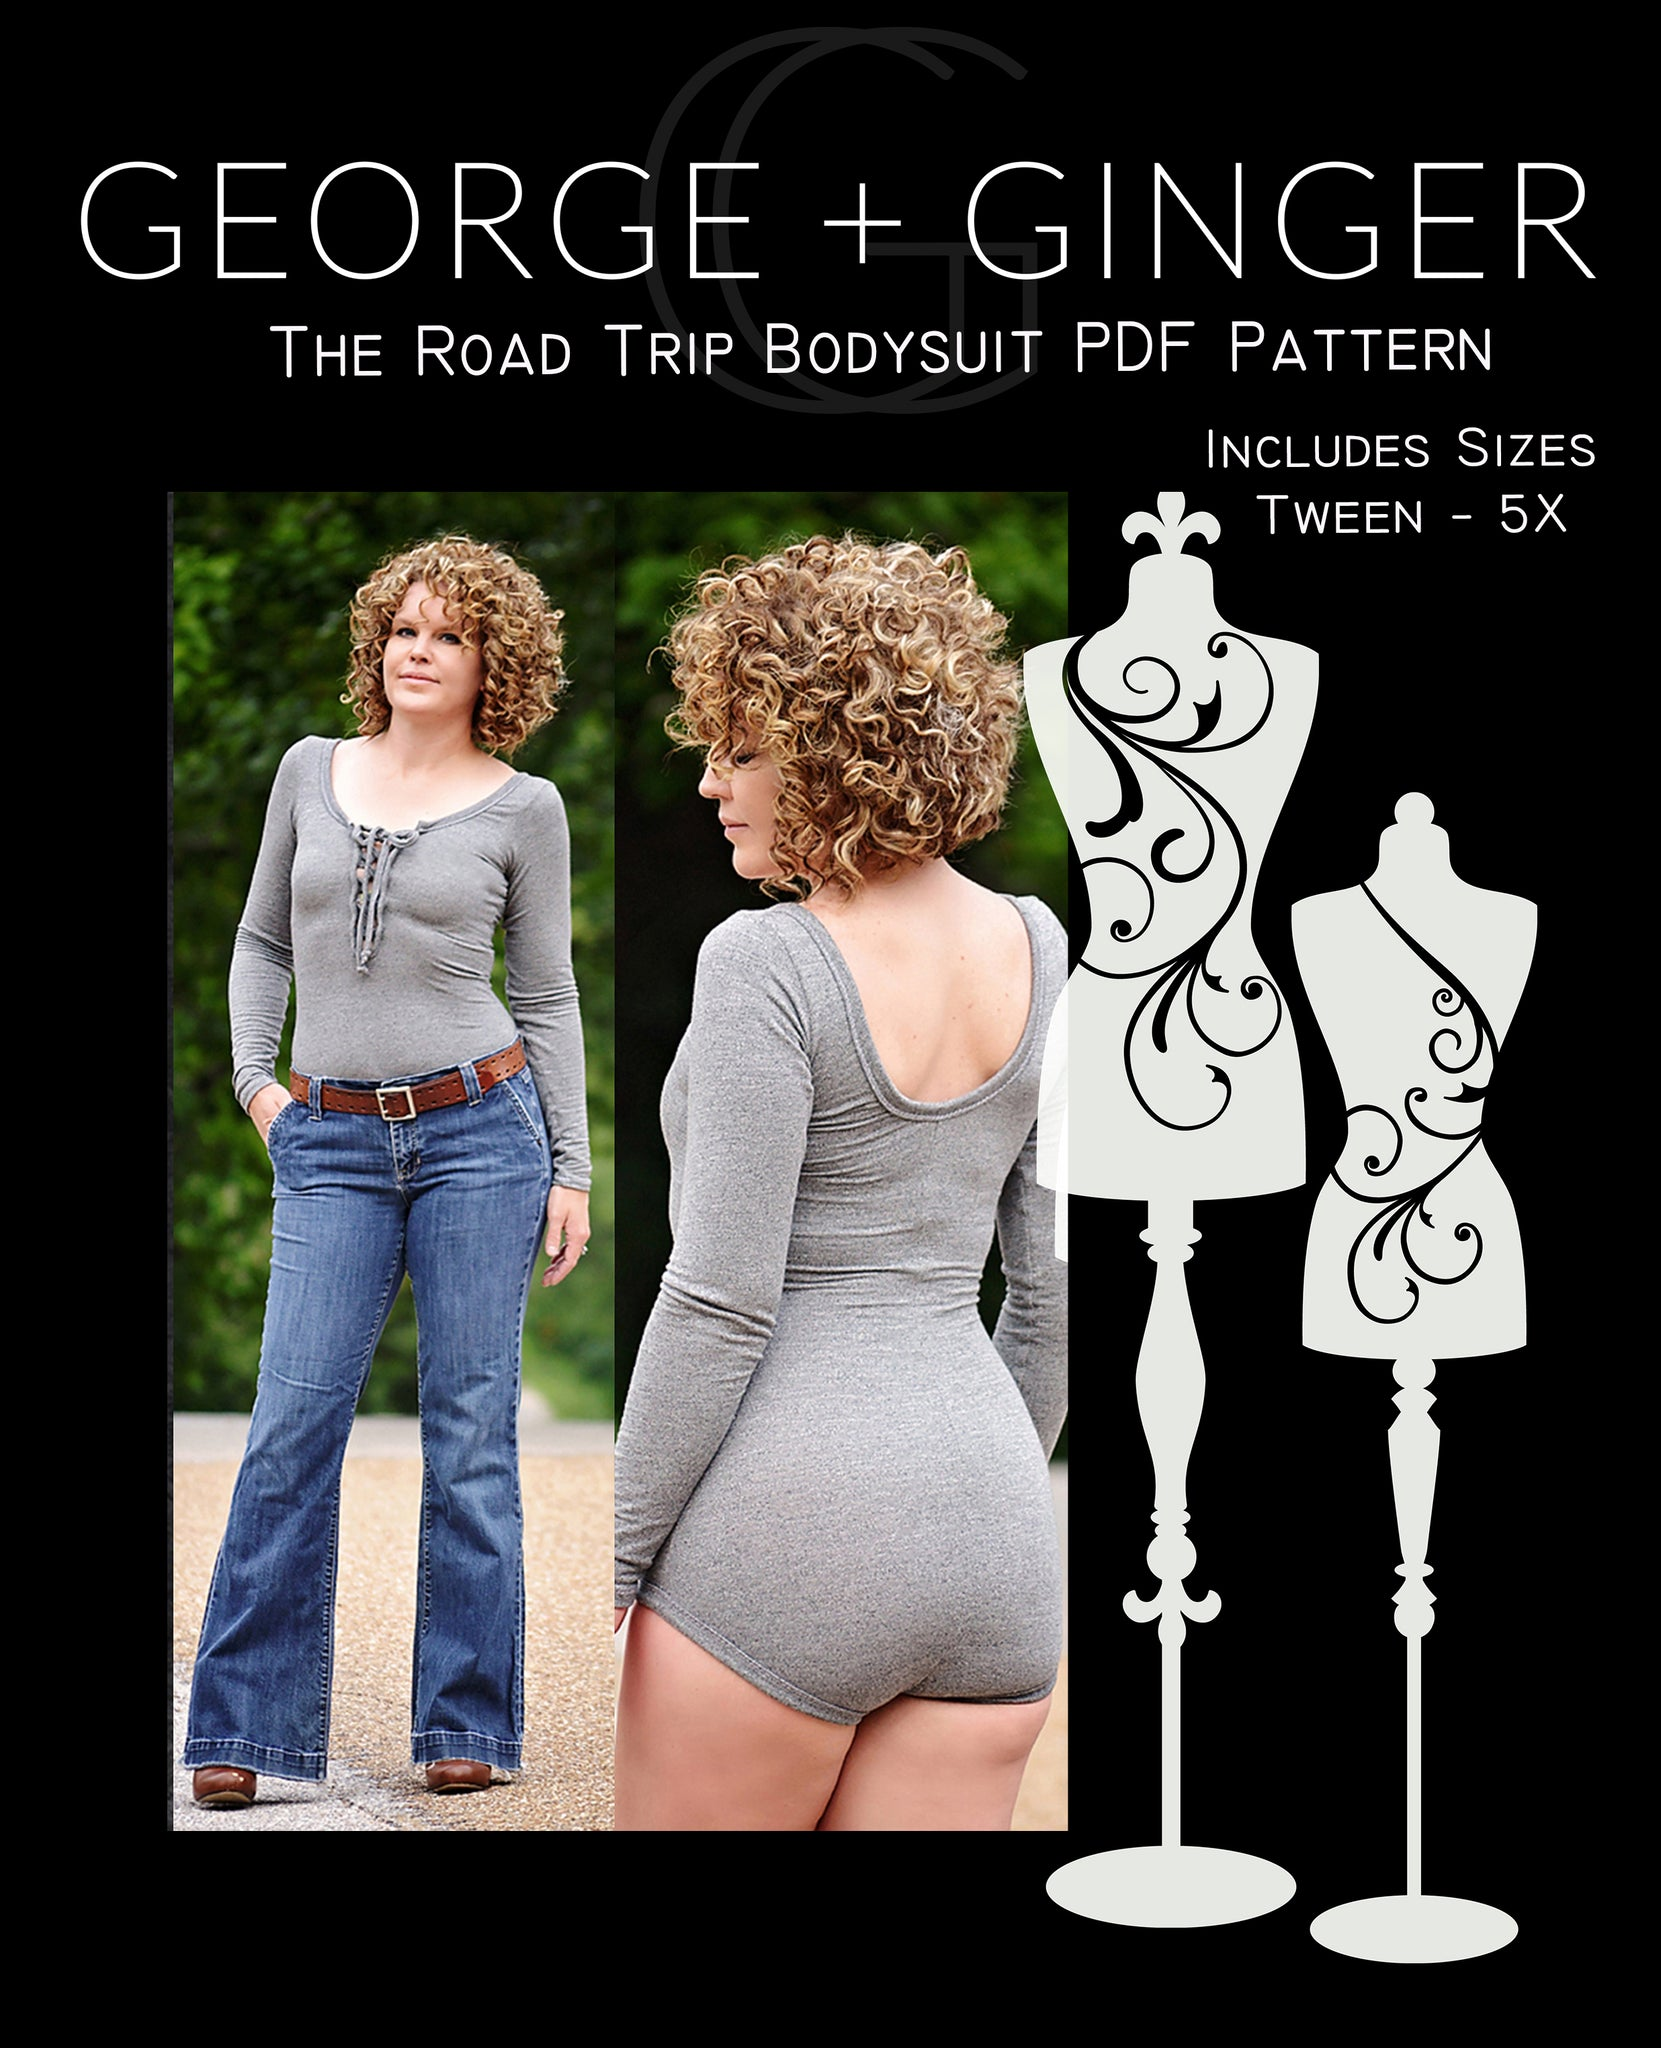 The Road Trip Bodysuit PDF Sewing Pattern